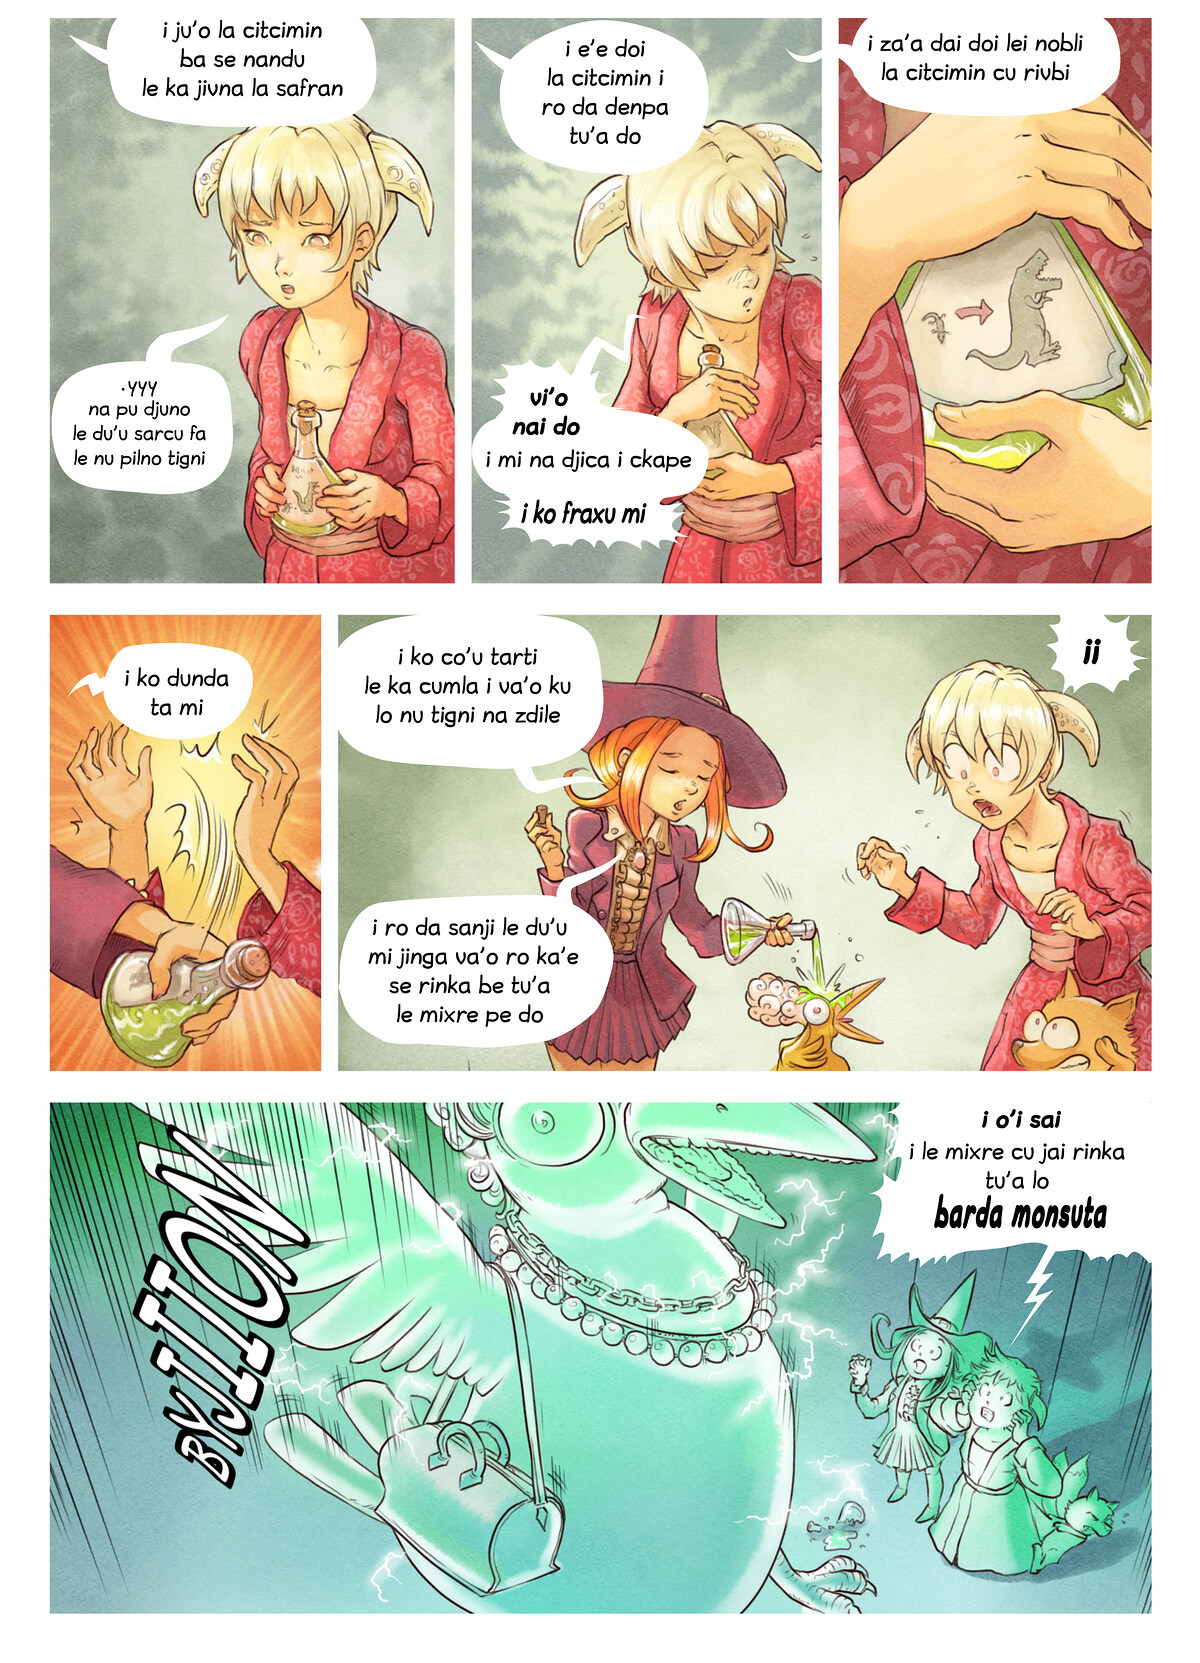 A webcomic page of Pepper&Carrot, pagbu 6 [jb], papri 6